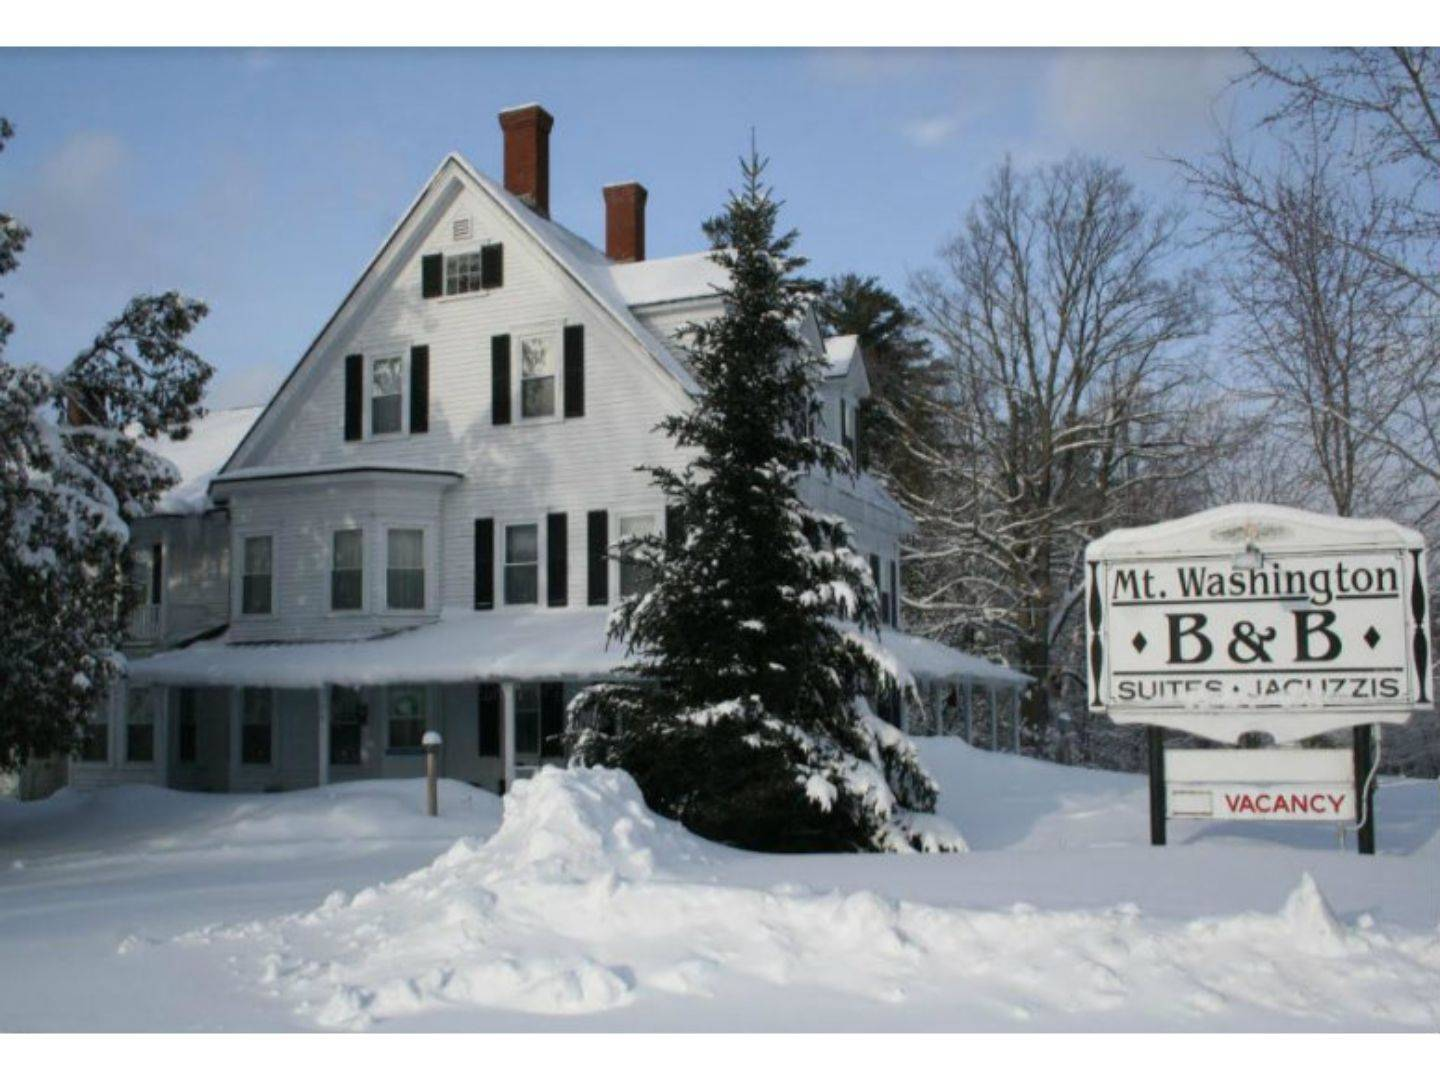 Shelburne Bed and Breakfast